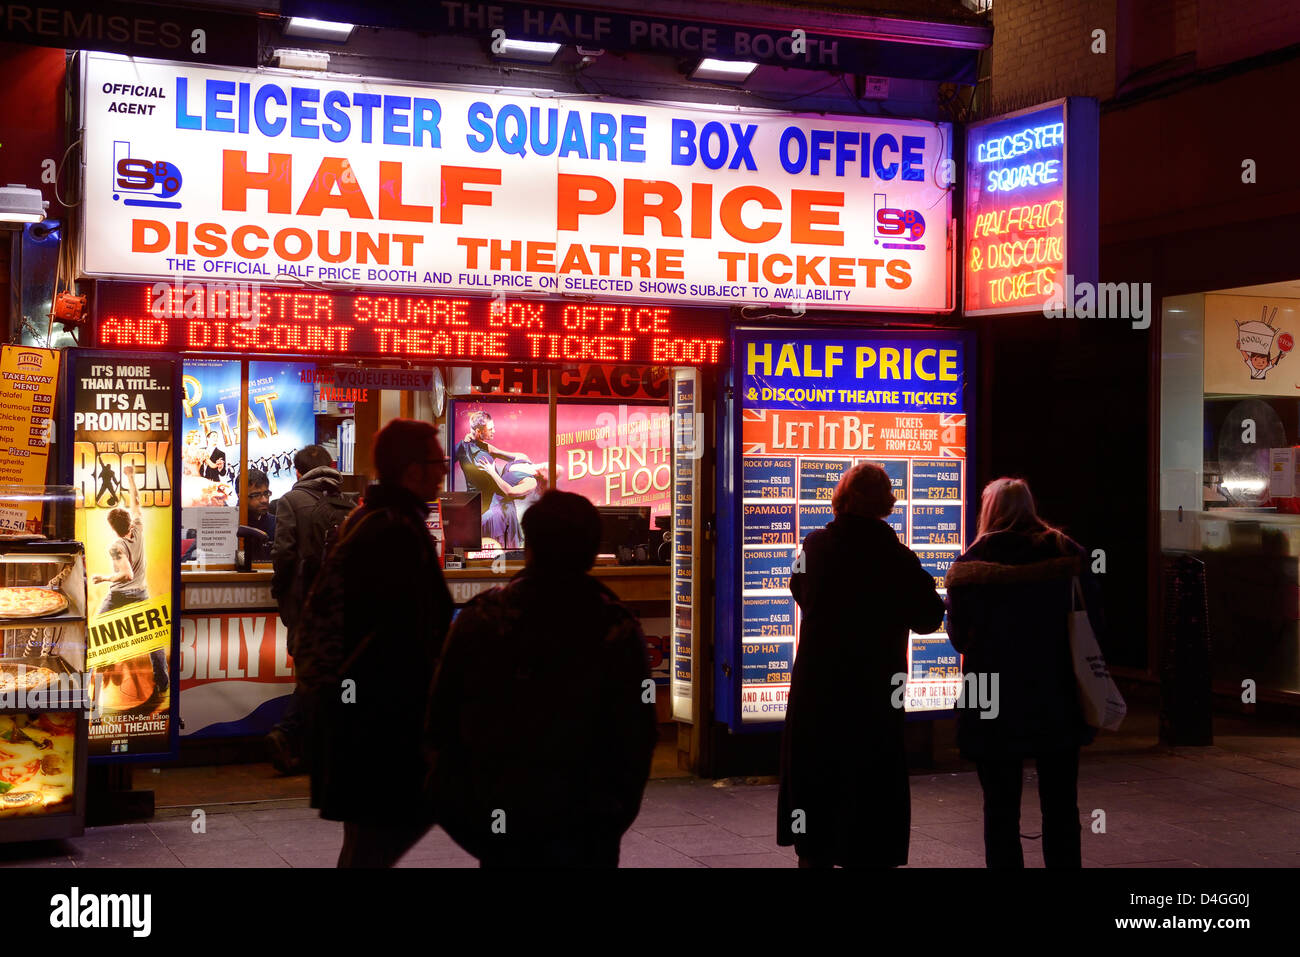 Discount Theatre Ticket booth at Leicester Square London UK - Stock Image